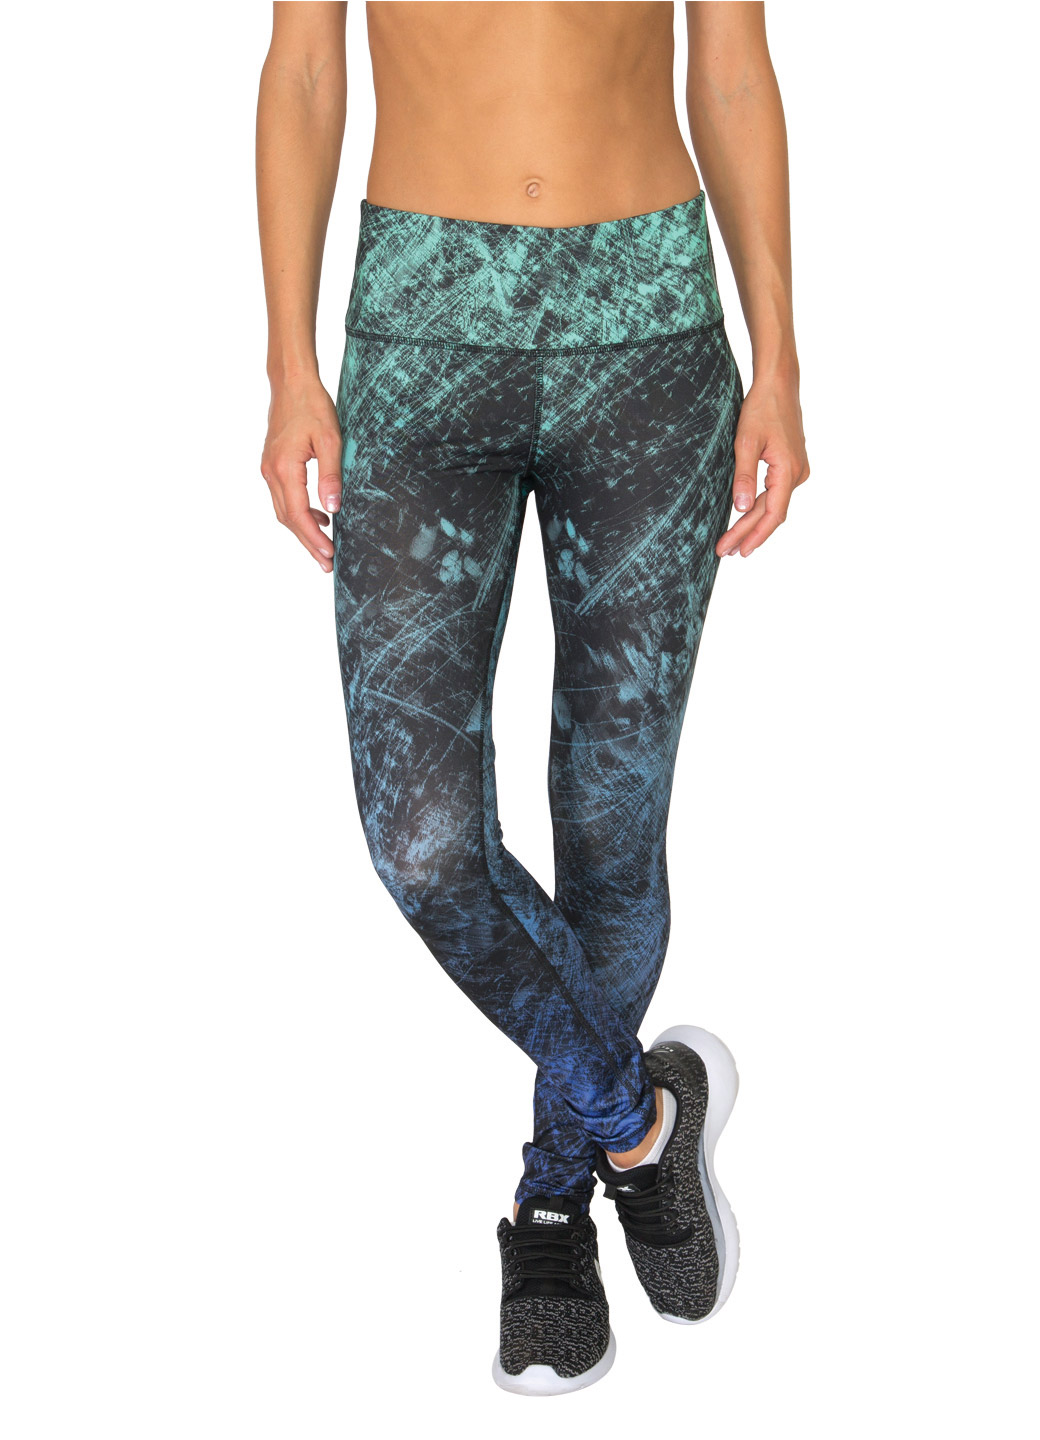 RBX Active Ombre Splatter Printed Leggings